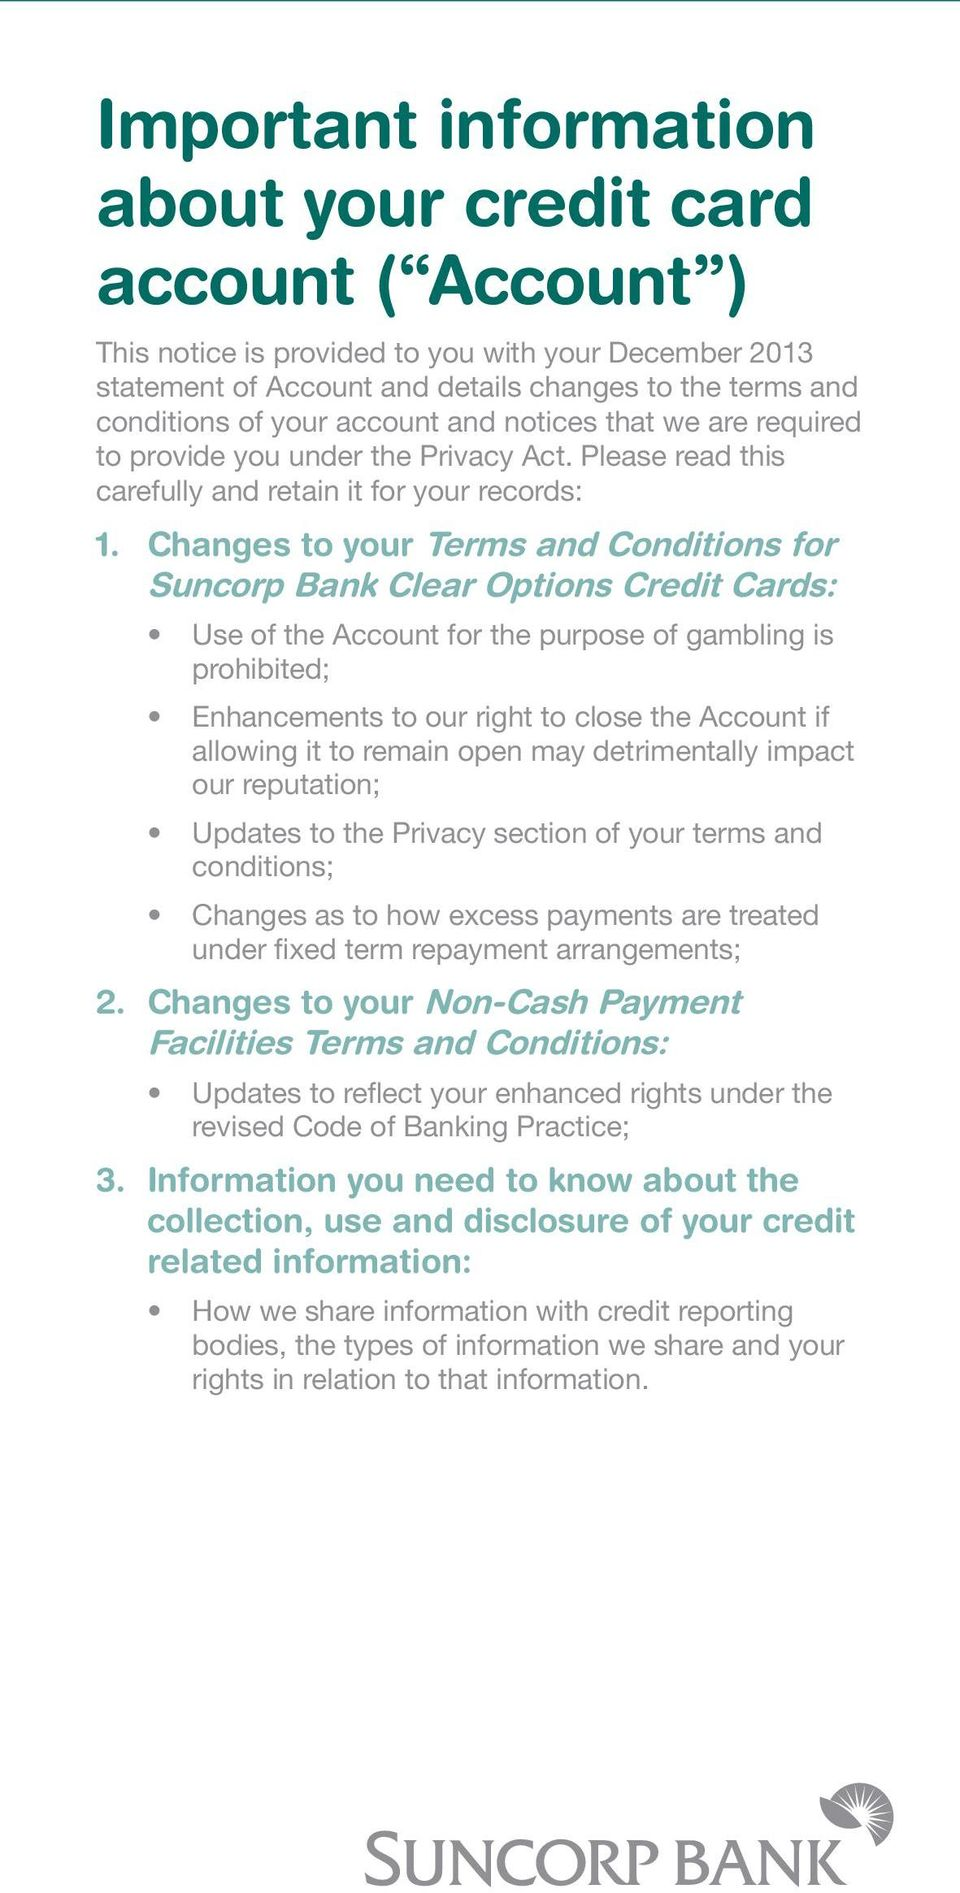 Changes to your Terms and Conditions for Suncorp Bank Clear Options Credit Cards: Use of the Account for the purpose of gambling is prohibited; Enhancements to our right to close the Account if